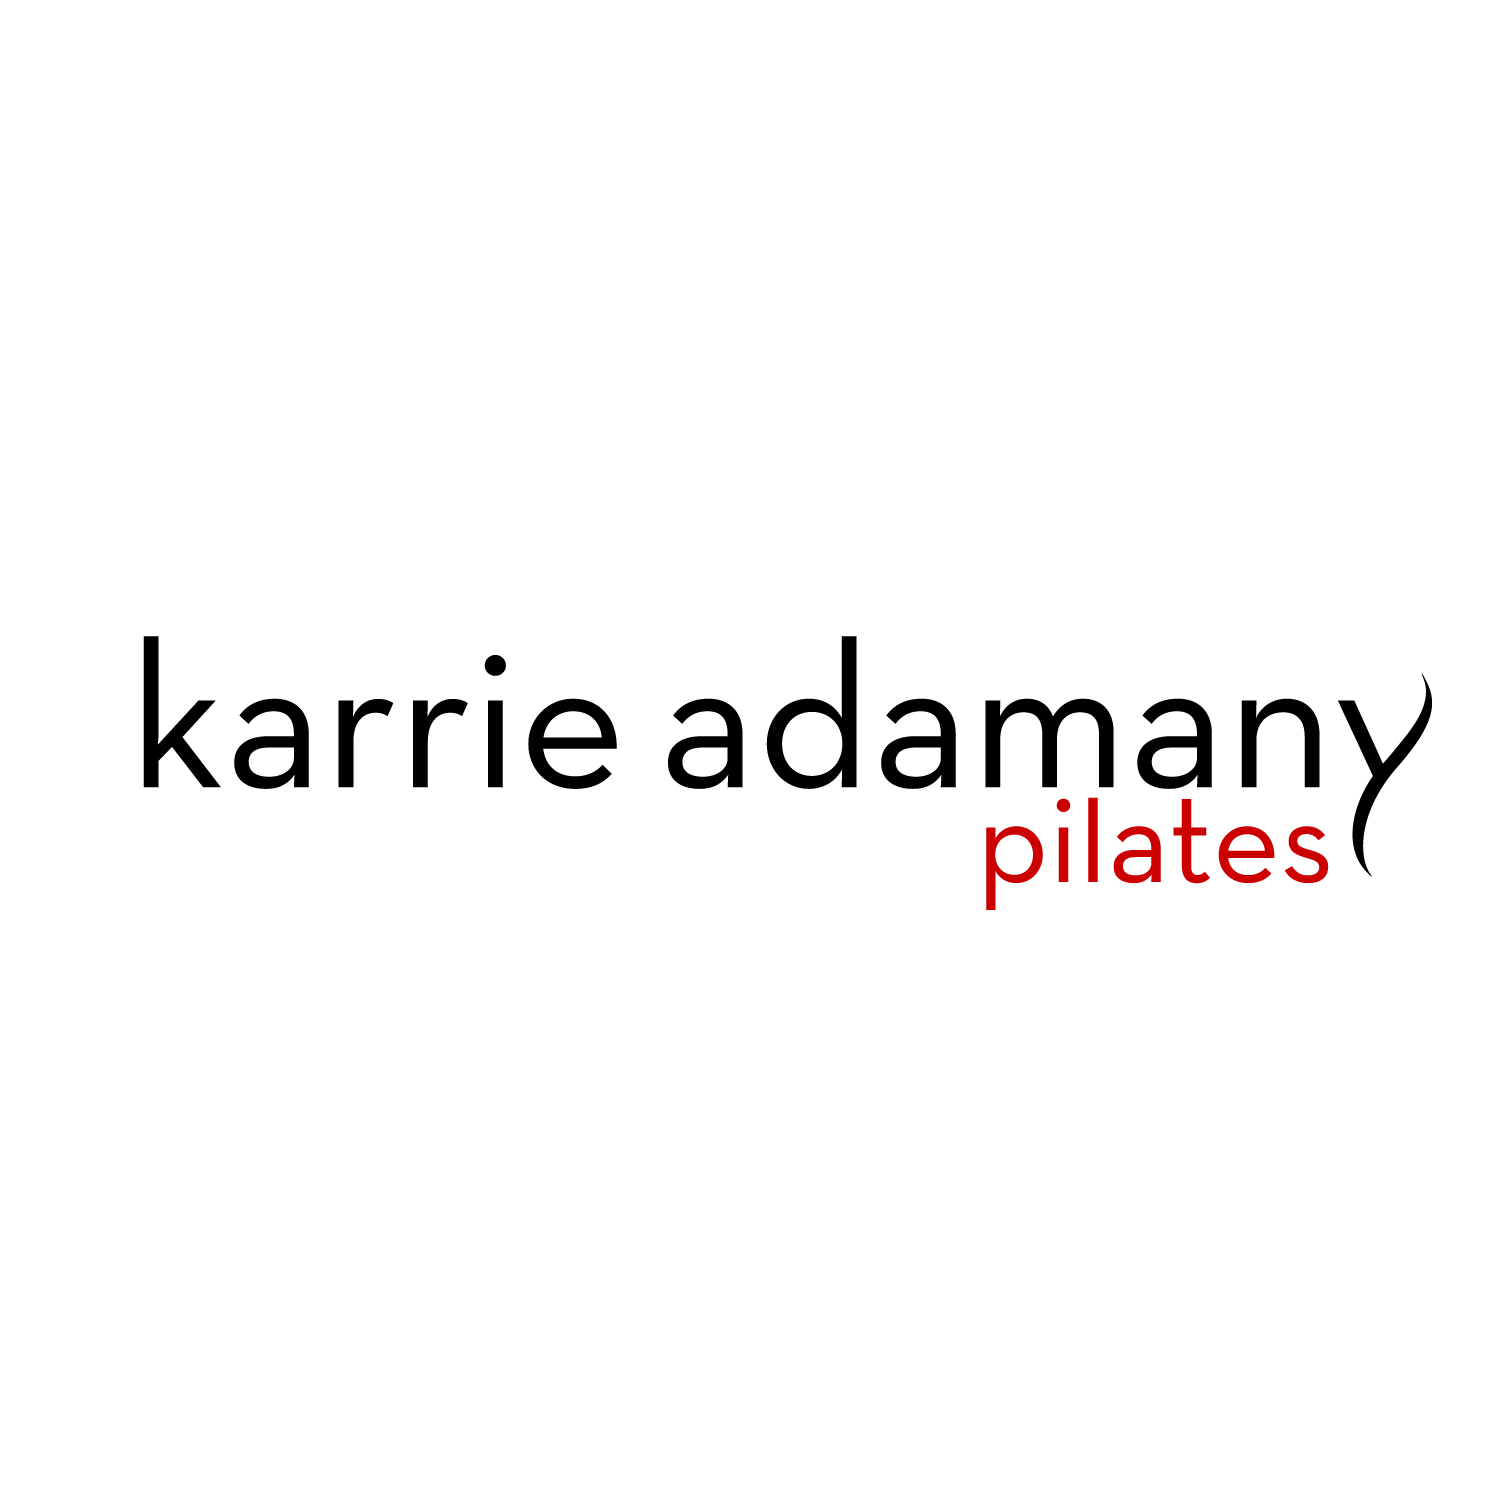 Karrie Adamany Pilates | Brooklyn, NY   Karrie Adamany is a fantastic pilates instructor. This logo represents the subtle yet powerful movements in pilates.